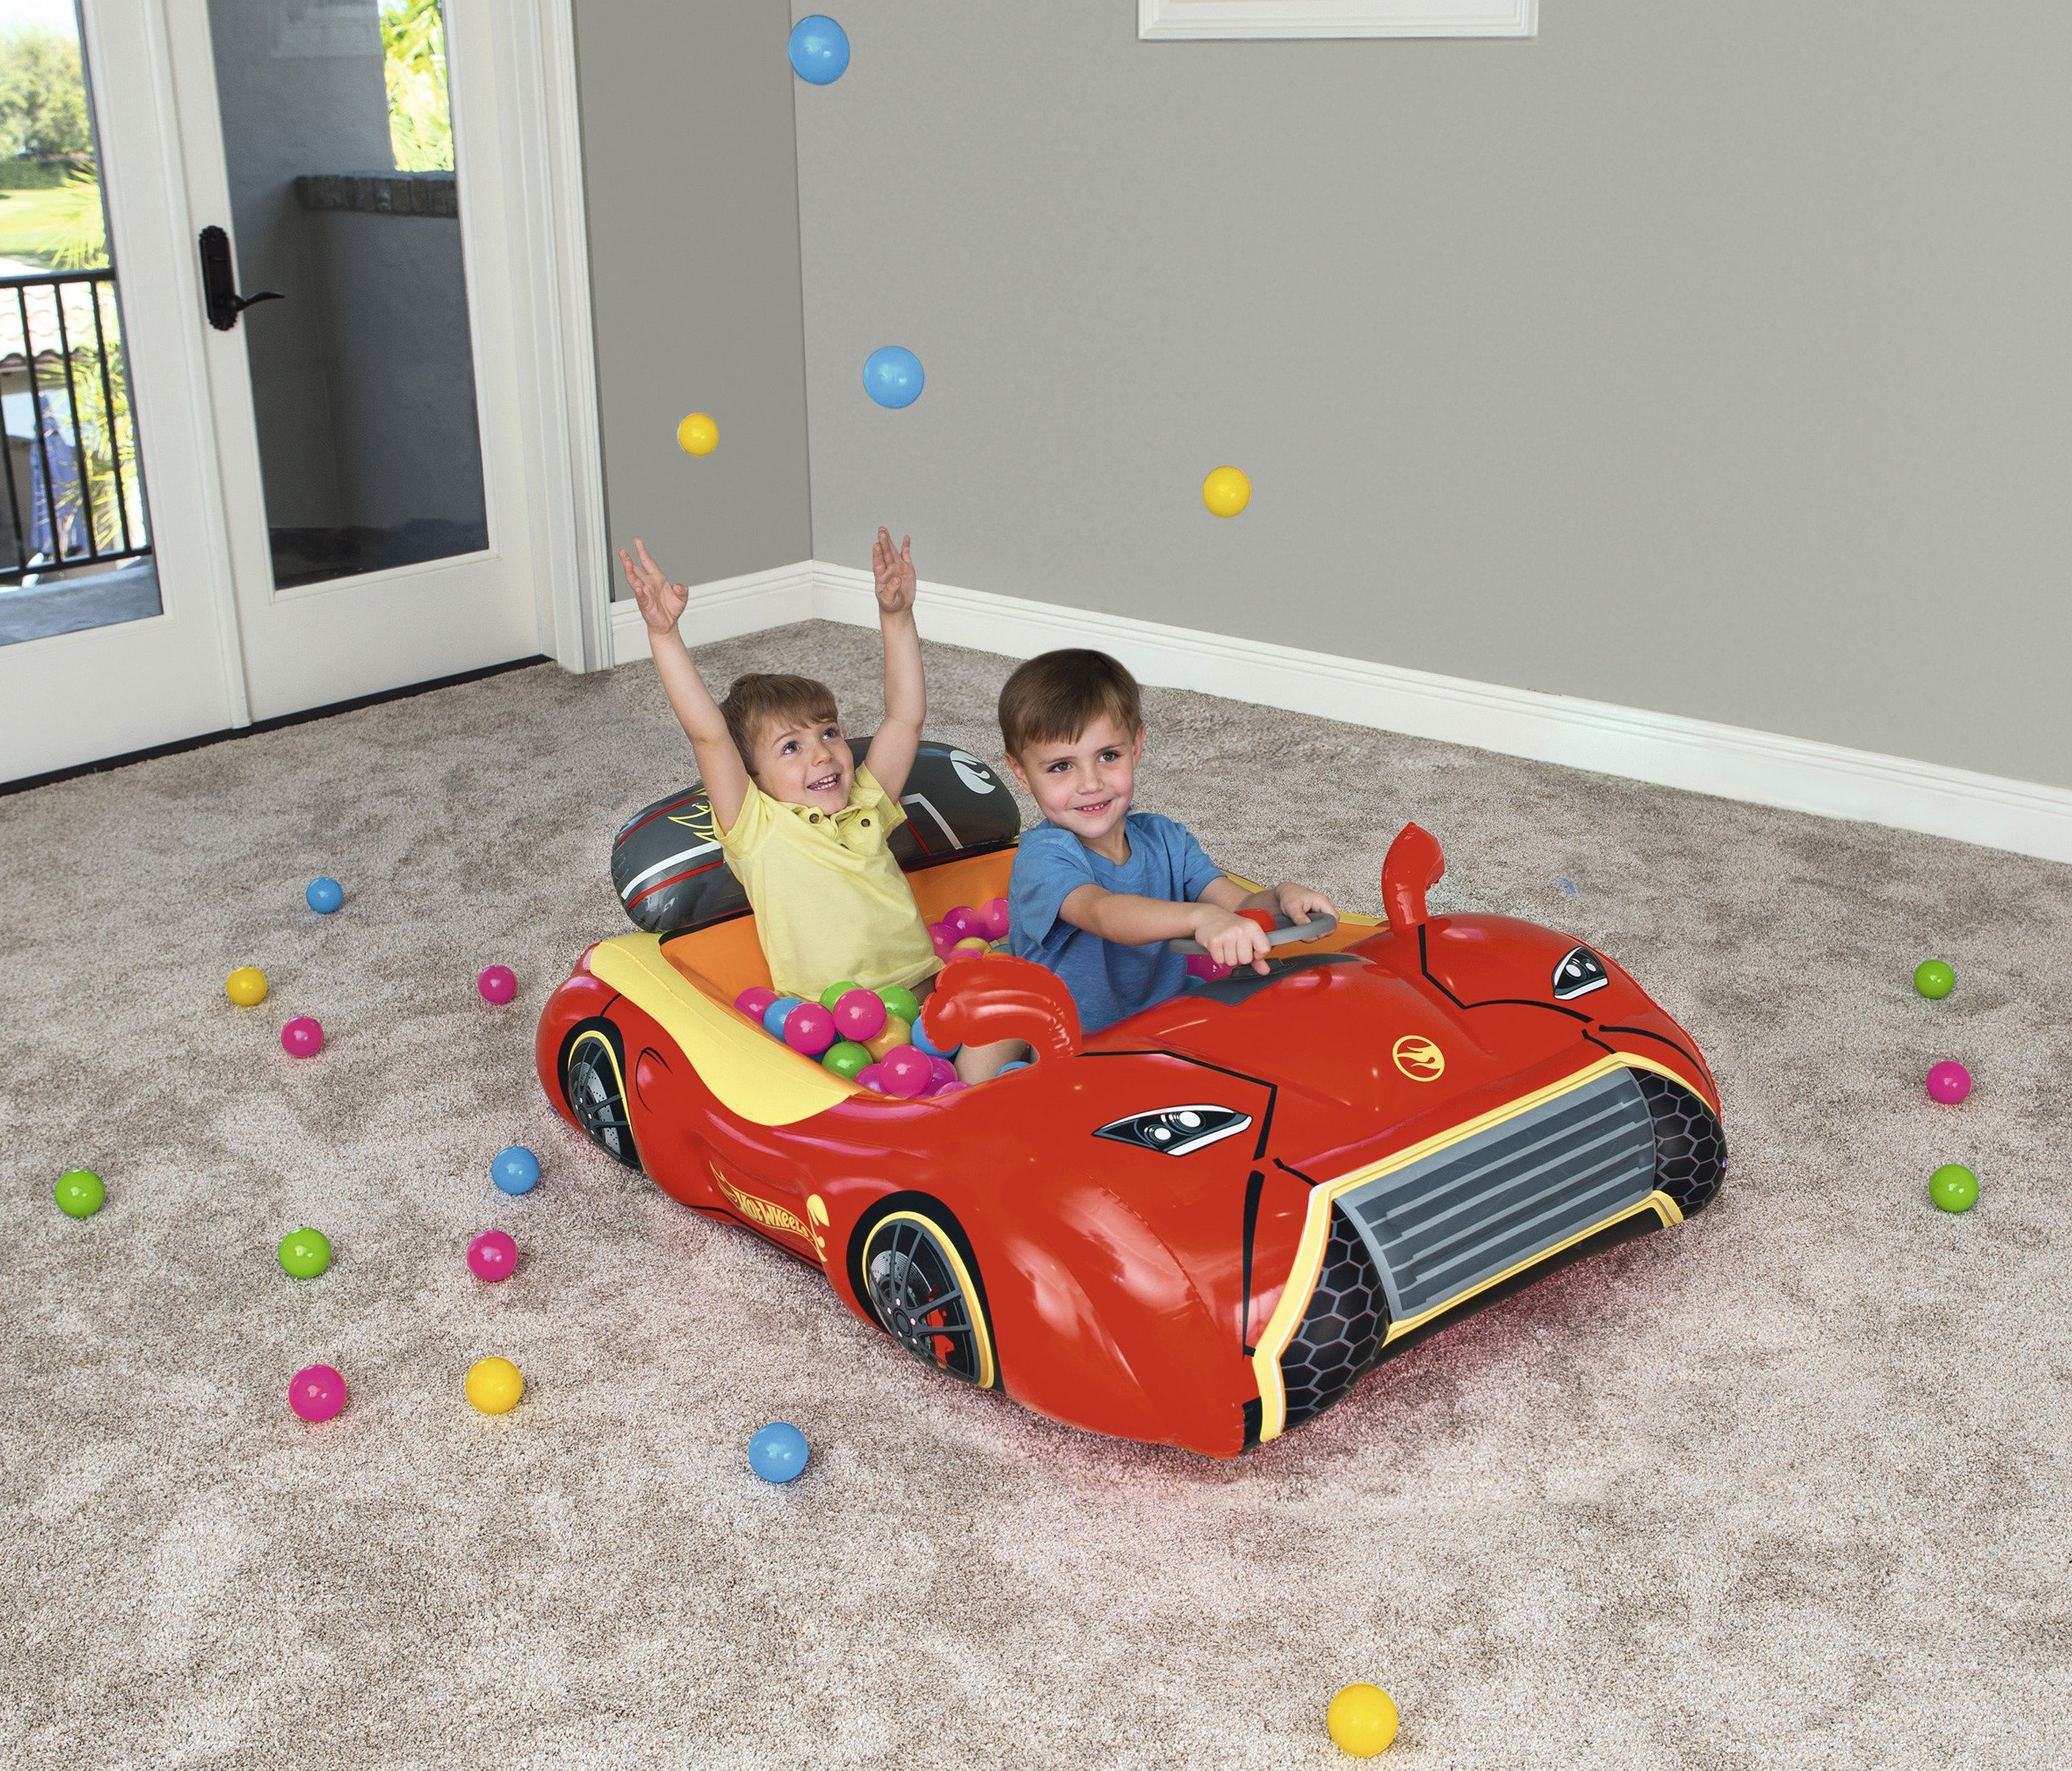 Bestway Hot Wheels Children's Inflatable Car Ball Pit, Includes 25 Balls by Bestway (Image #10)